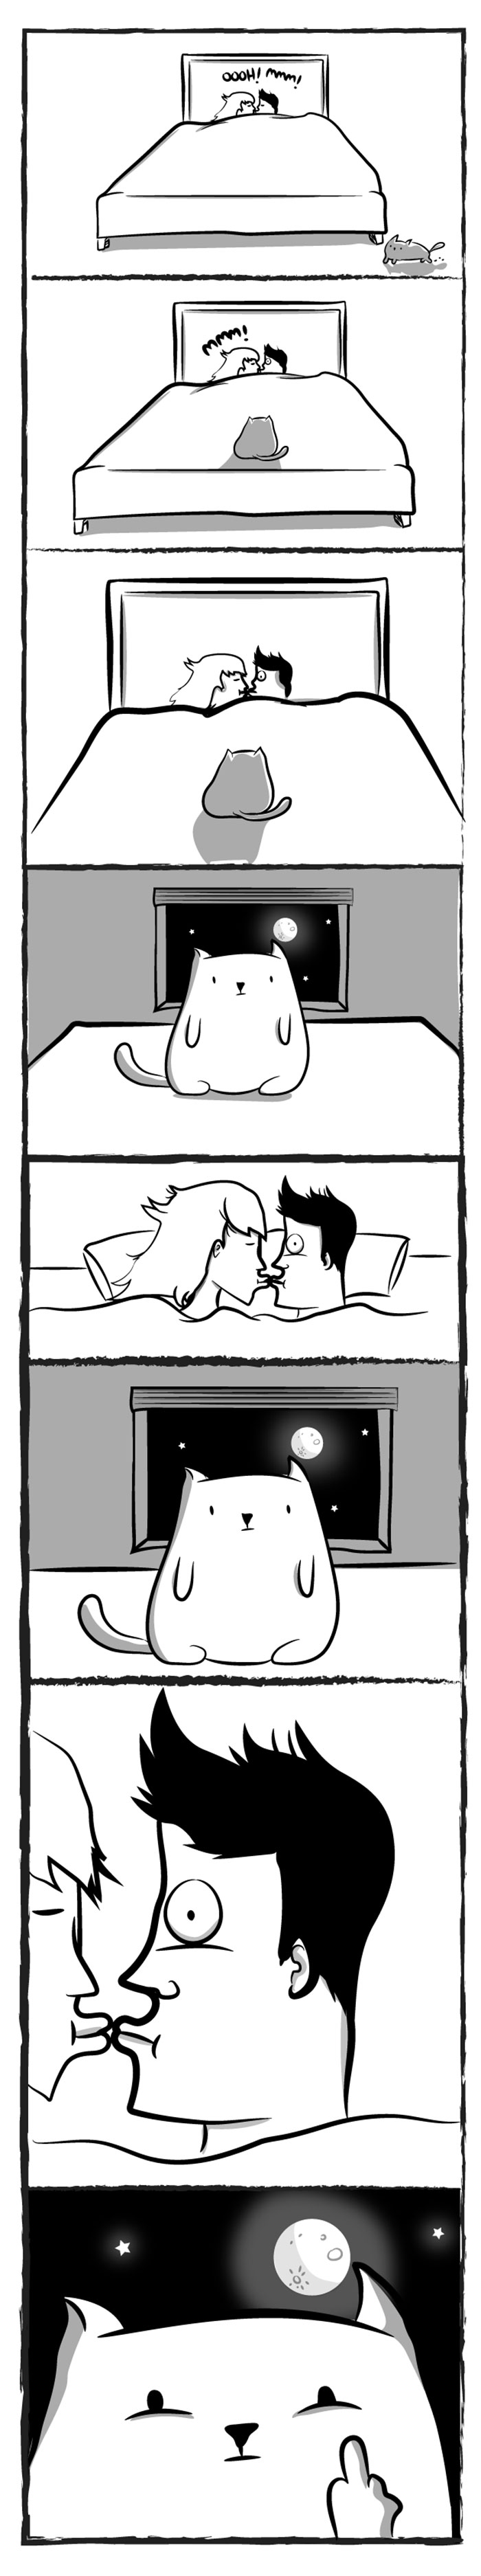 funny-cat-owner-comics-4